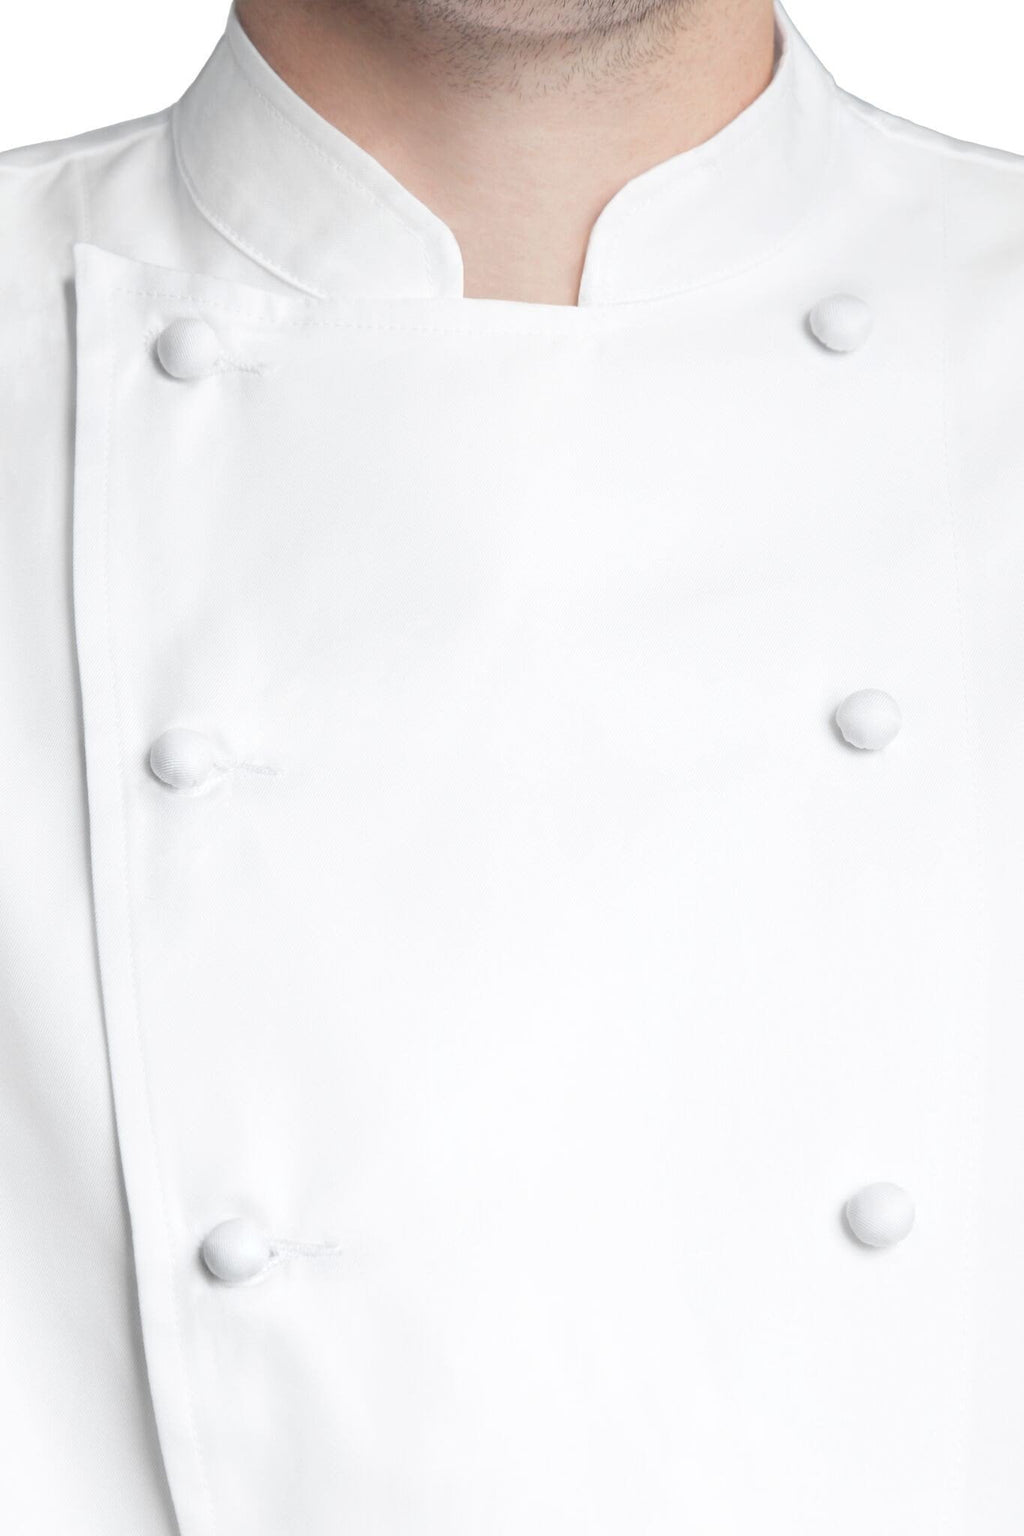 Bragard Grand Chef Short-Sleeve Jacket Buttons